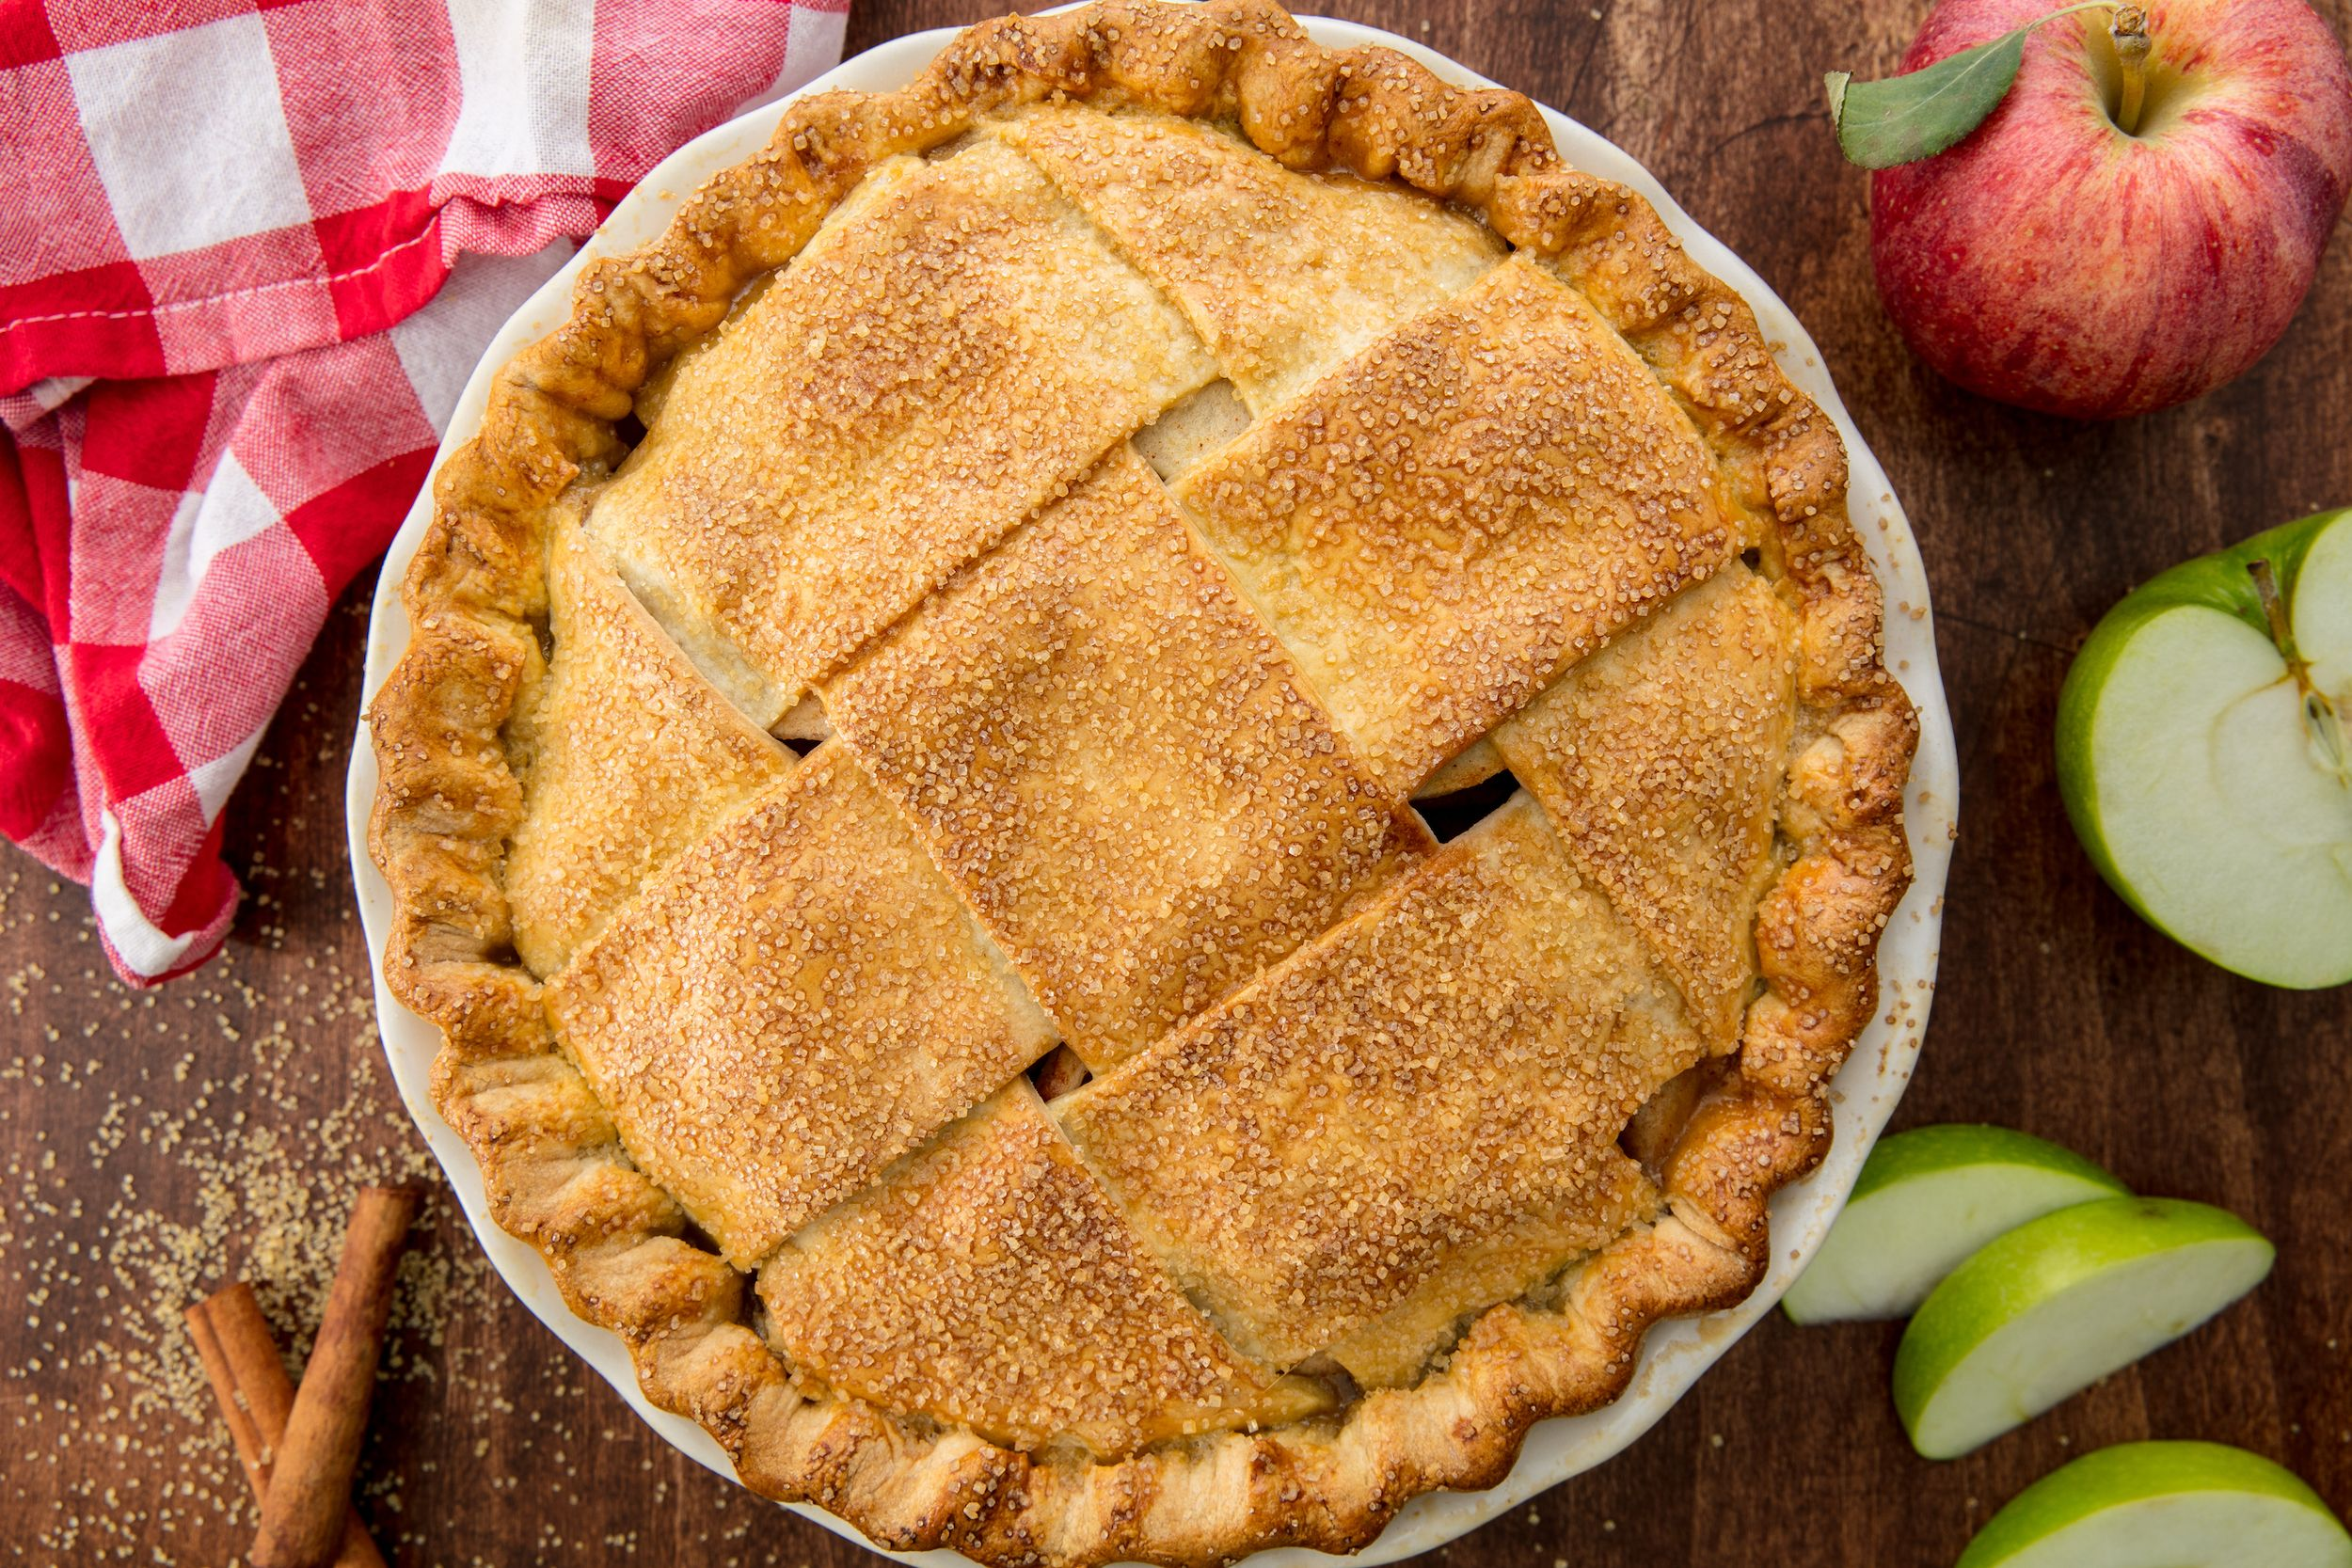 Best Homemade Apple Pie Recipe How To Make Easy Apple Pie From Scratch